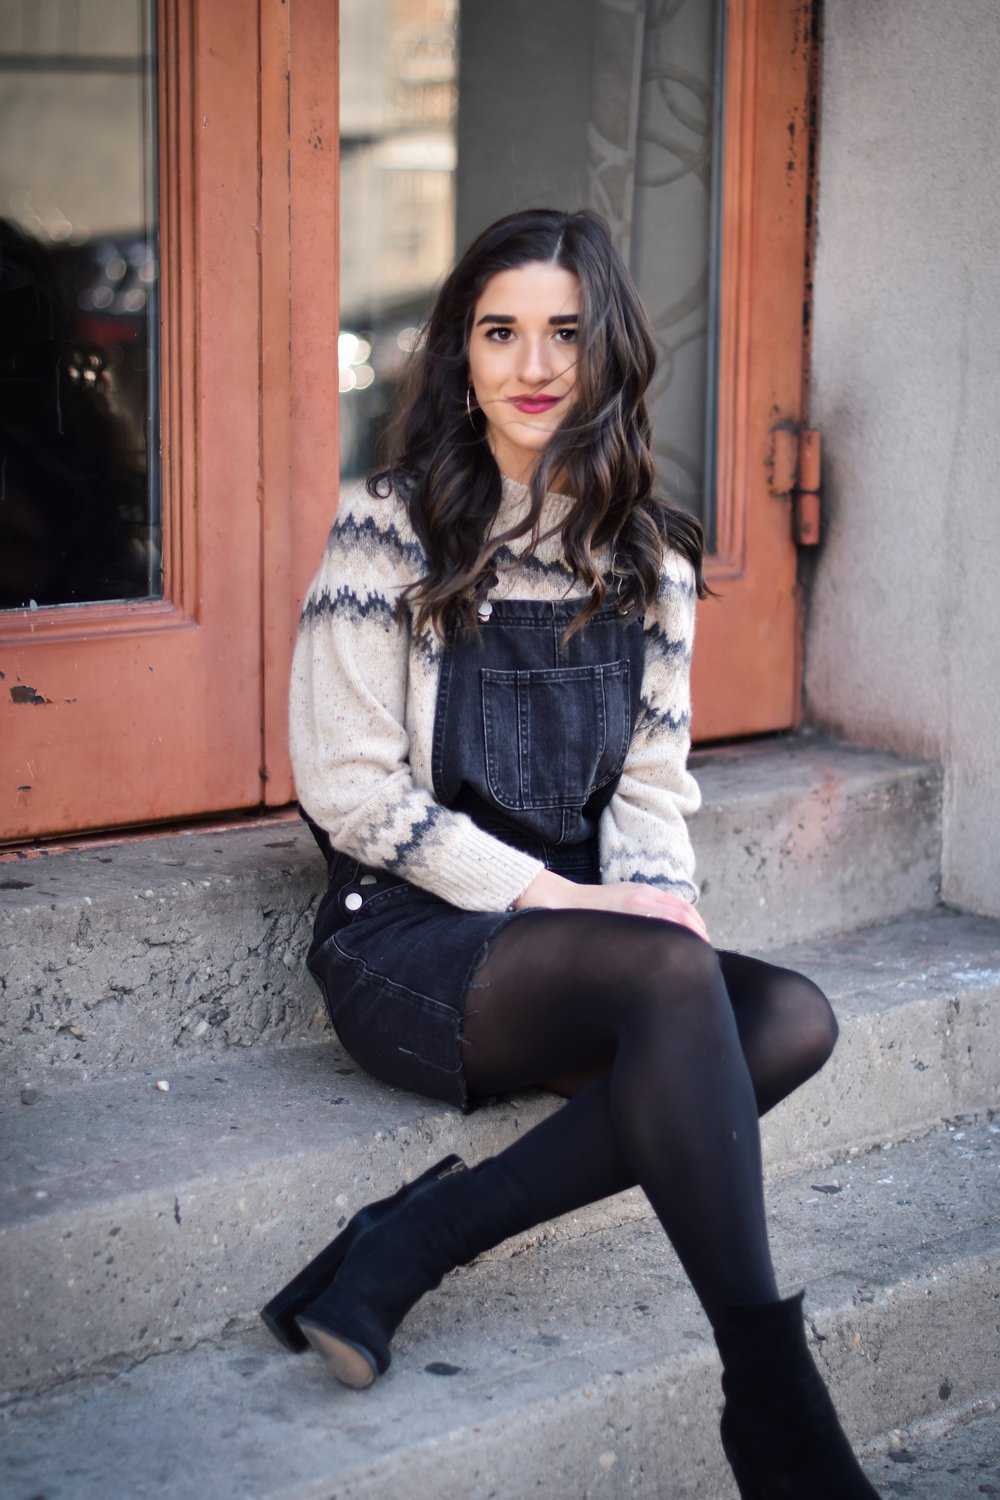 My Biggest Fashion And Beauty Mistakes Jean Overall Dress Over Cashmere Sweater Esther Santer Fashion Blog NYC Street Style Blogger Outfit OOTD Trendy Shopping Tights Cozy Winter What To Wear Cold Wavy Hair Girl Women Bold Lip Block Heel Booties Denim.jpg